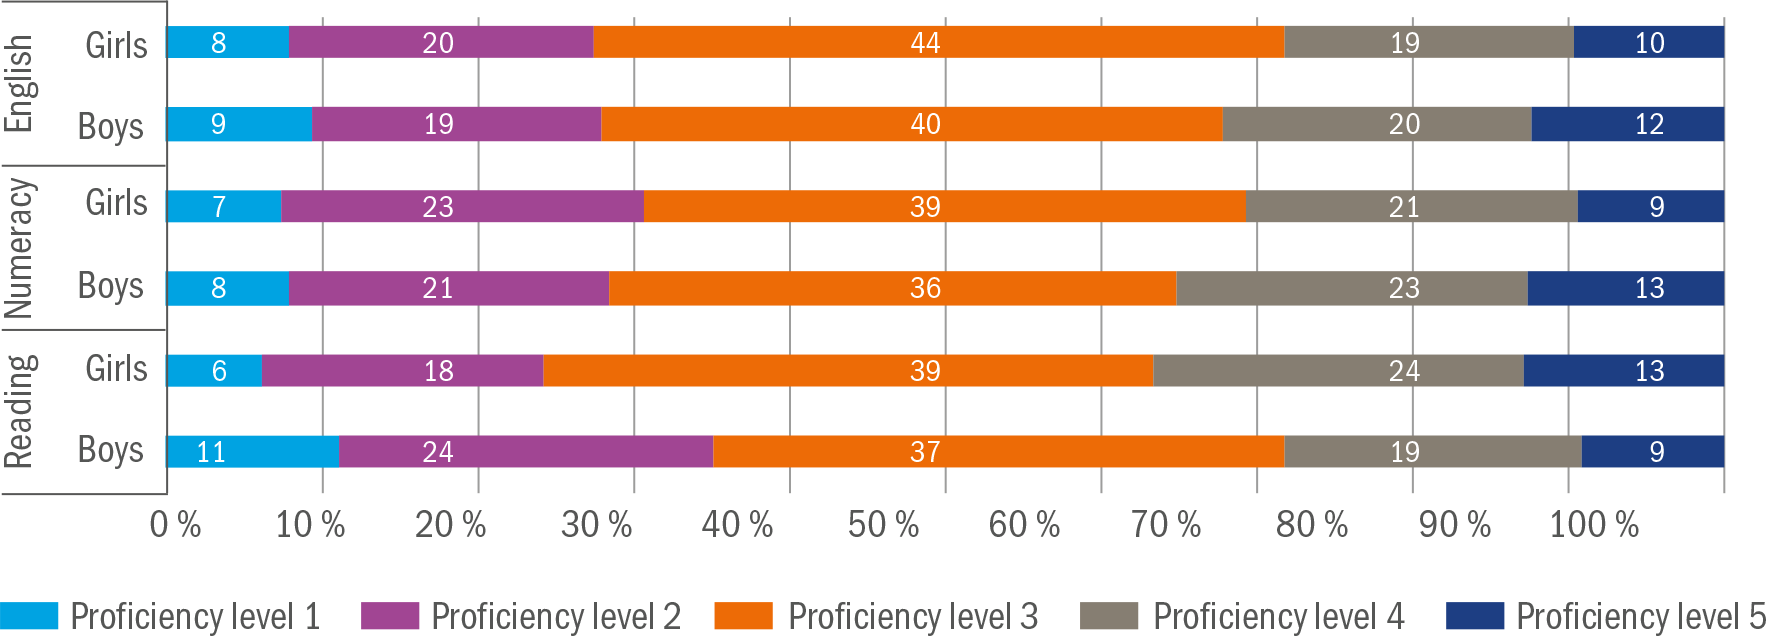 figure-5-3-results-of-national-tests-year-8-by-proficiency-level-and-gender-2015-16-per-cent